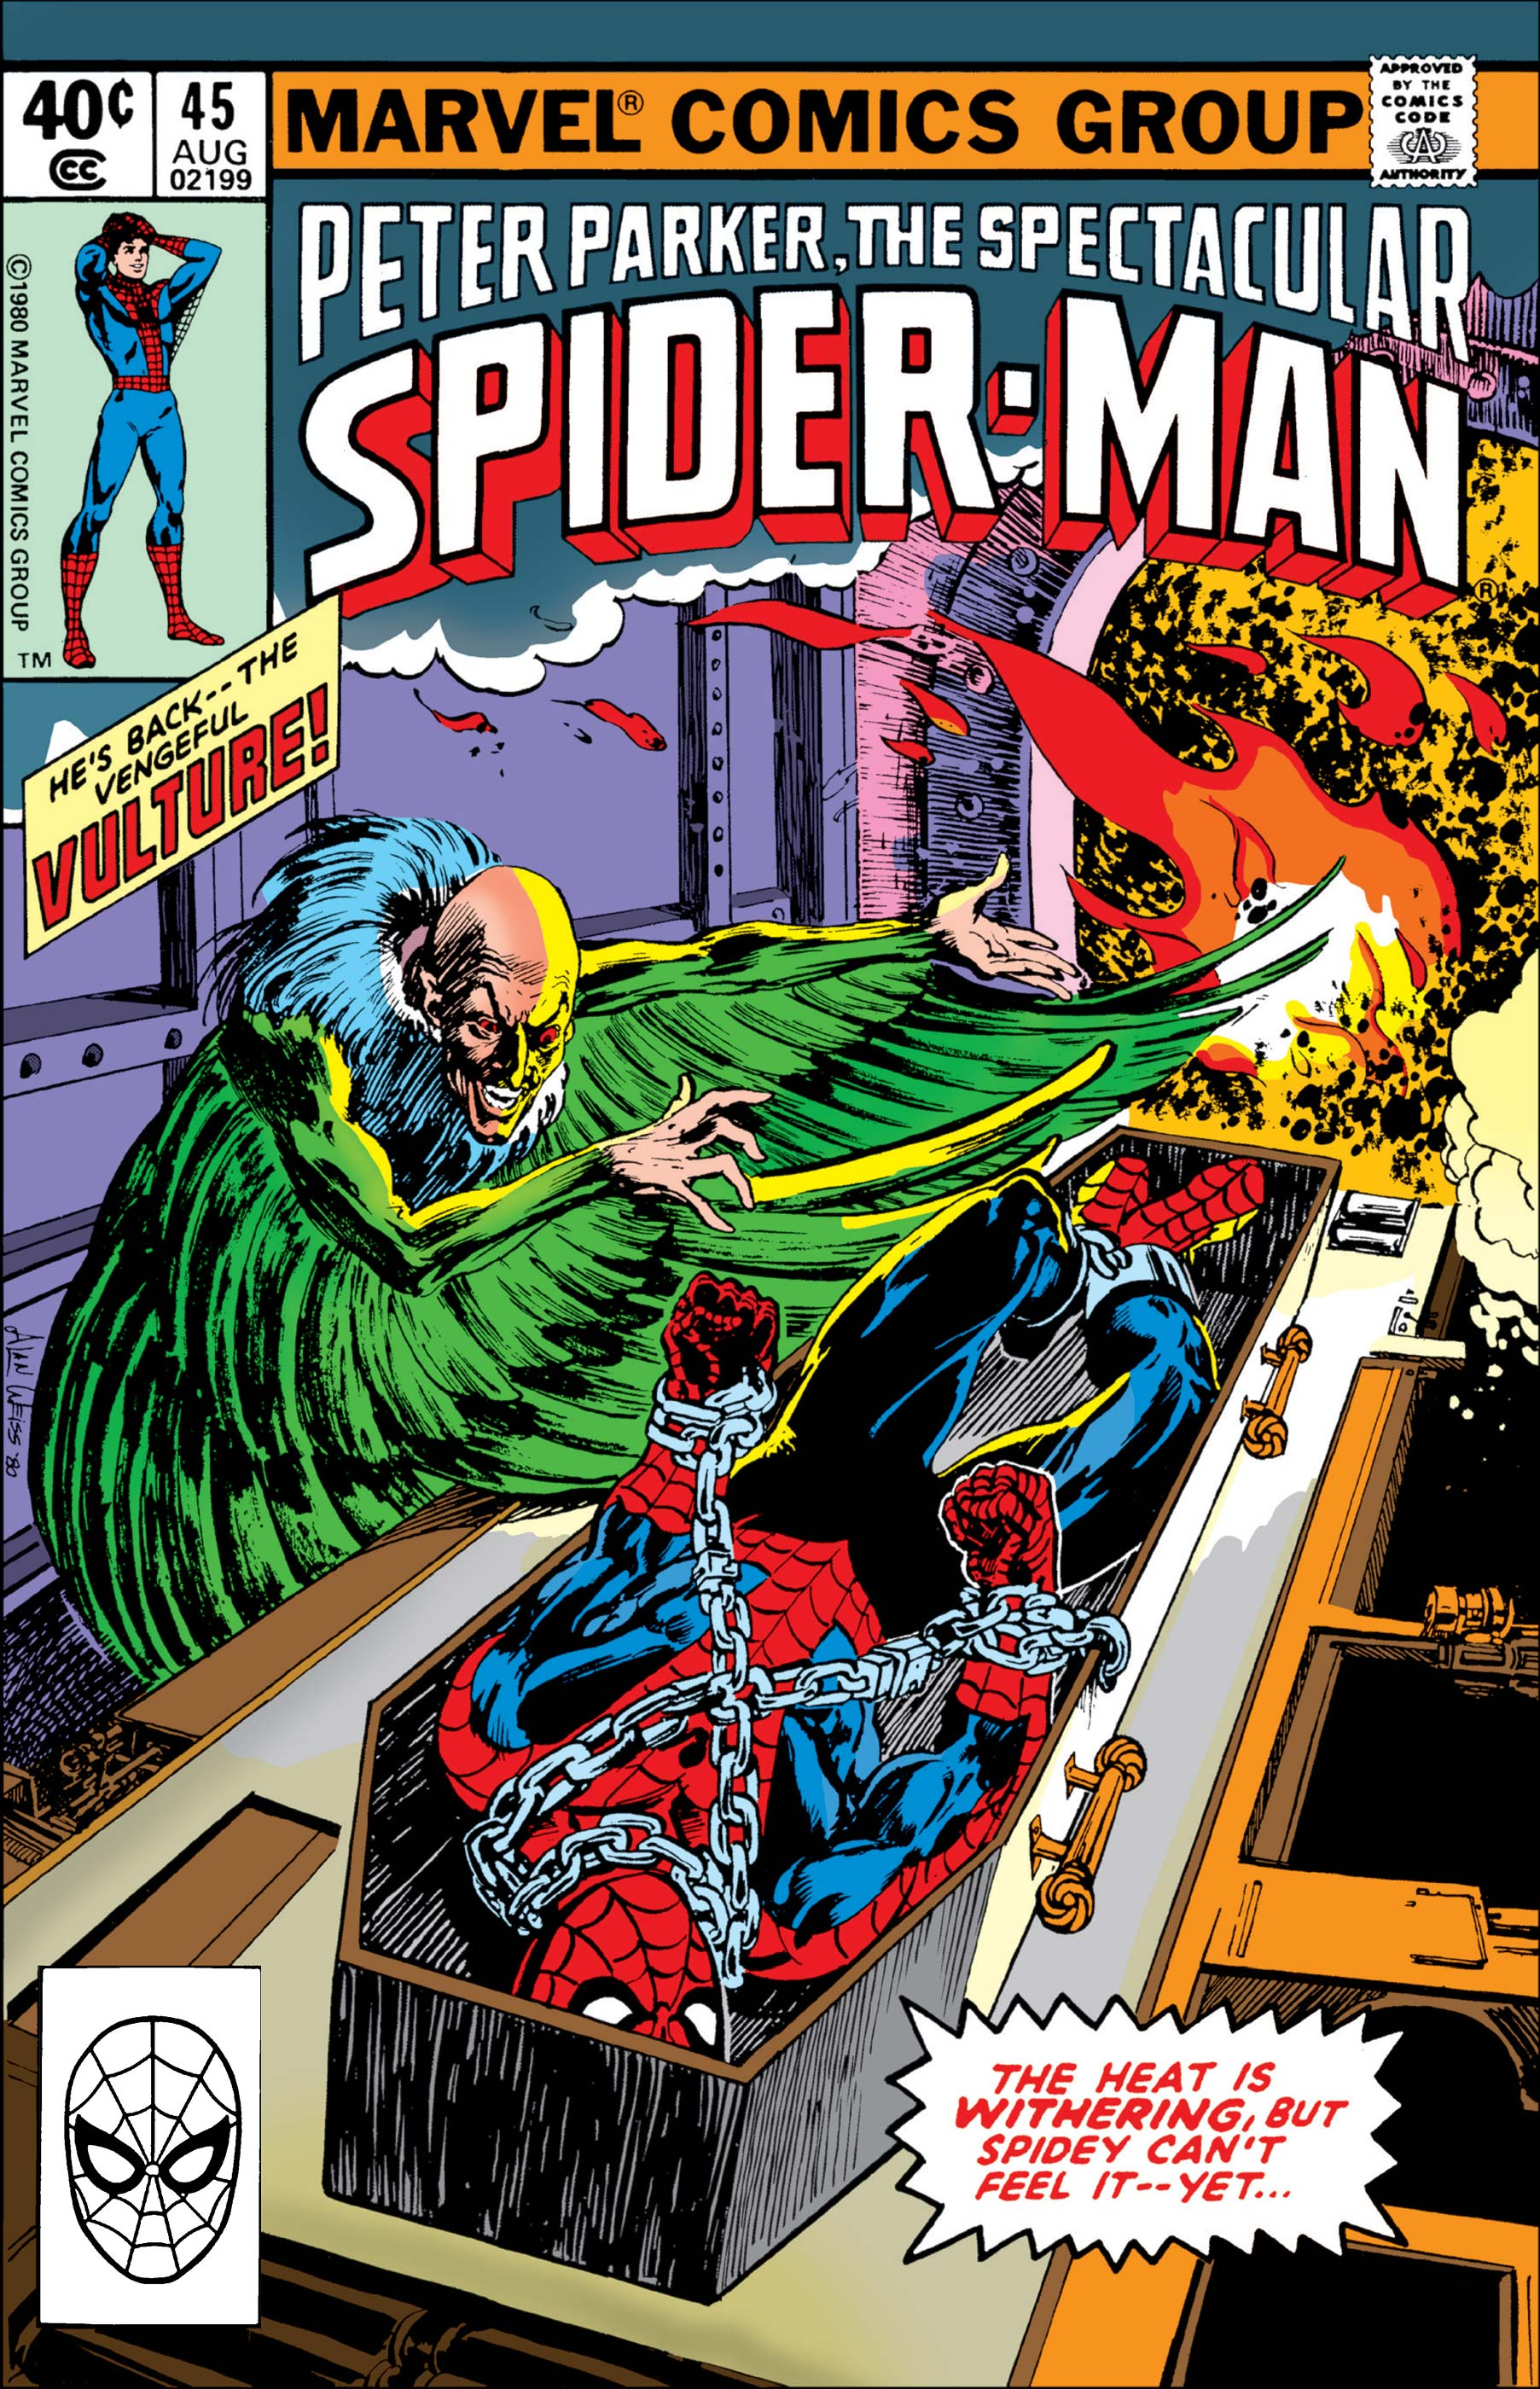 Peter Parker, the Spectacular Spider-Man (1976) #45